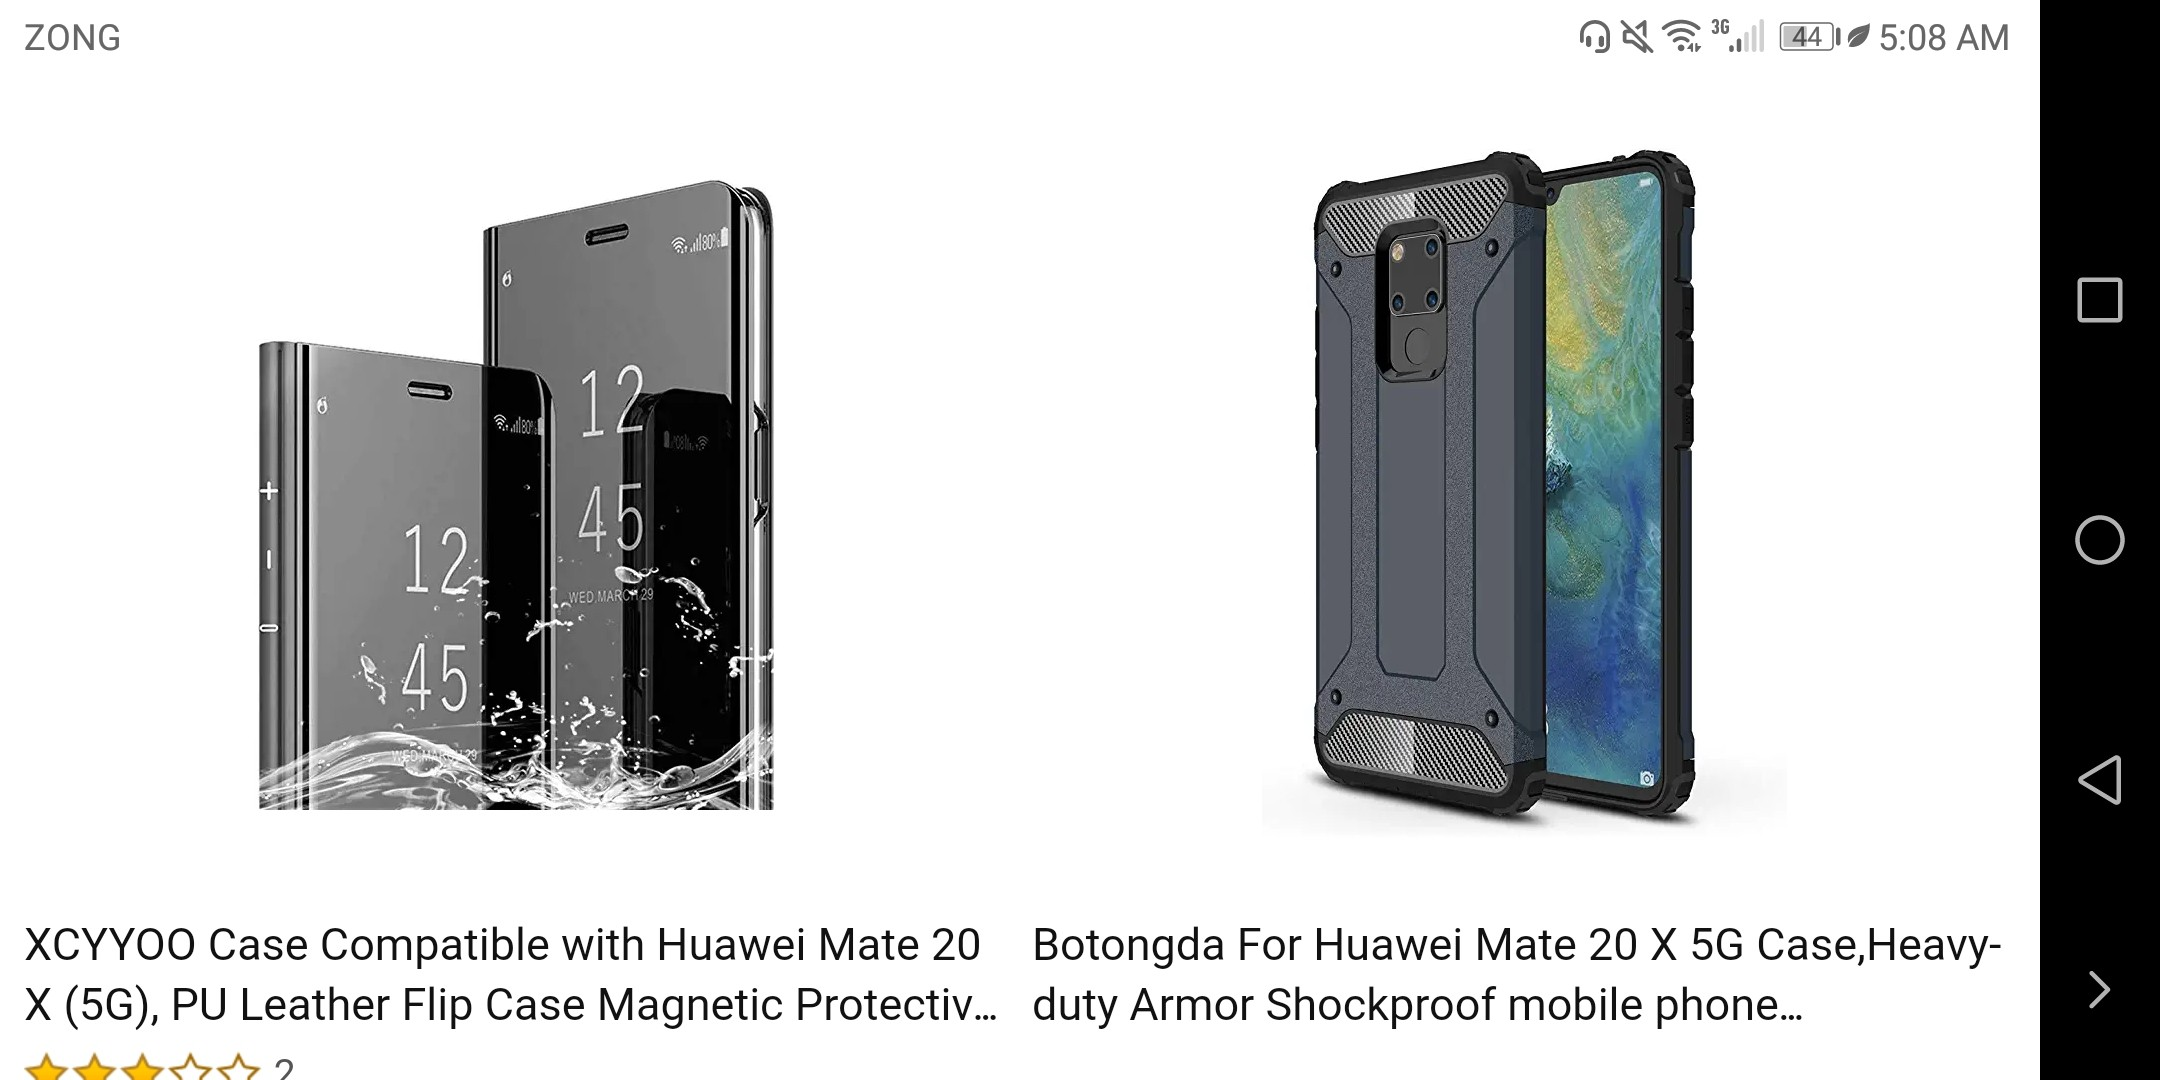 HUAWEI MATE 20X 5G CASES 2019